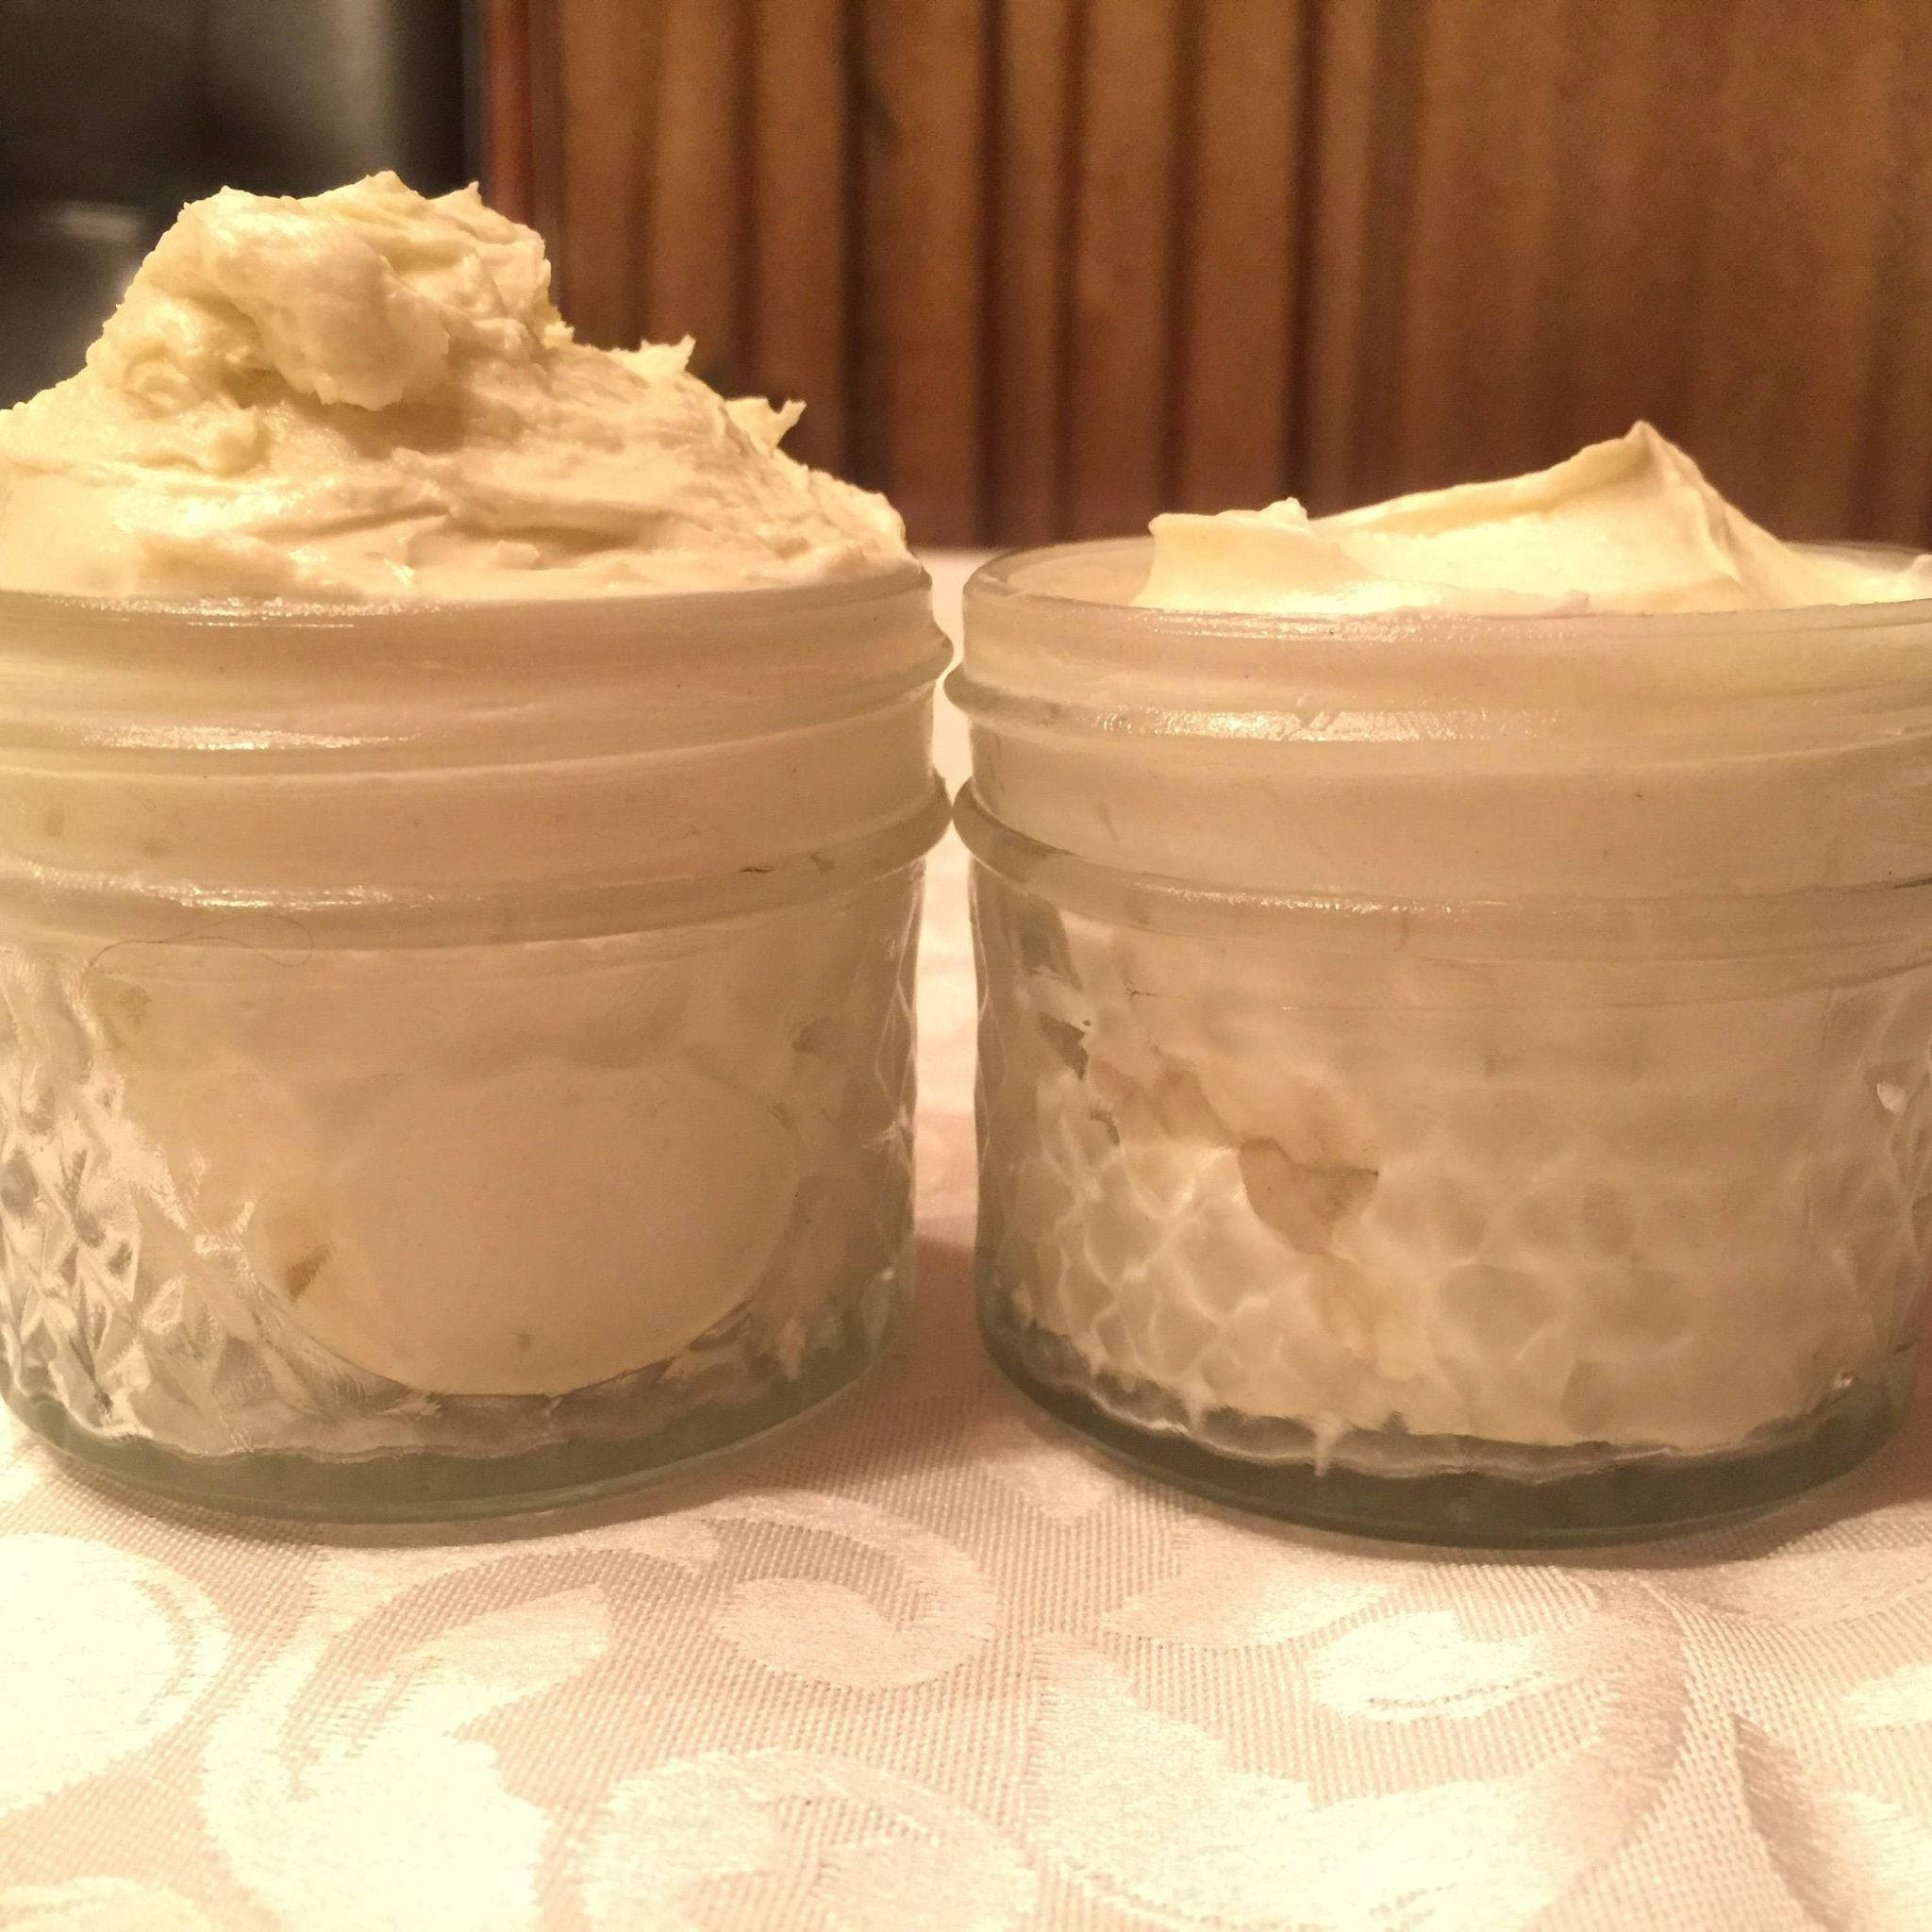 Unscented Shea butter nourishing lotion